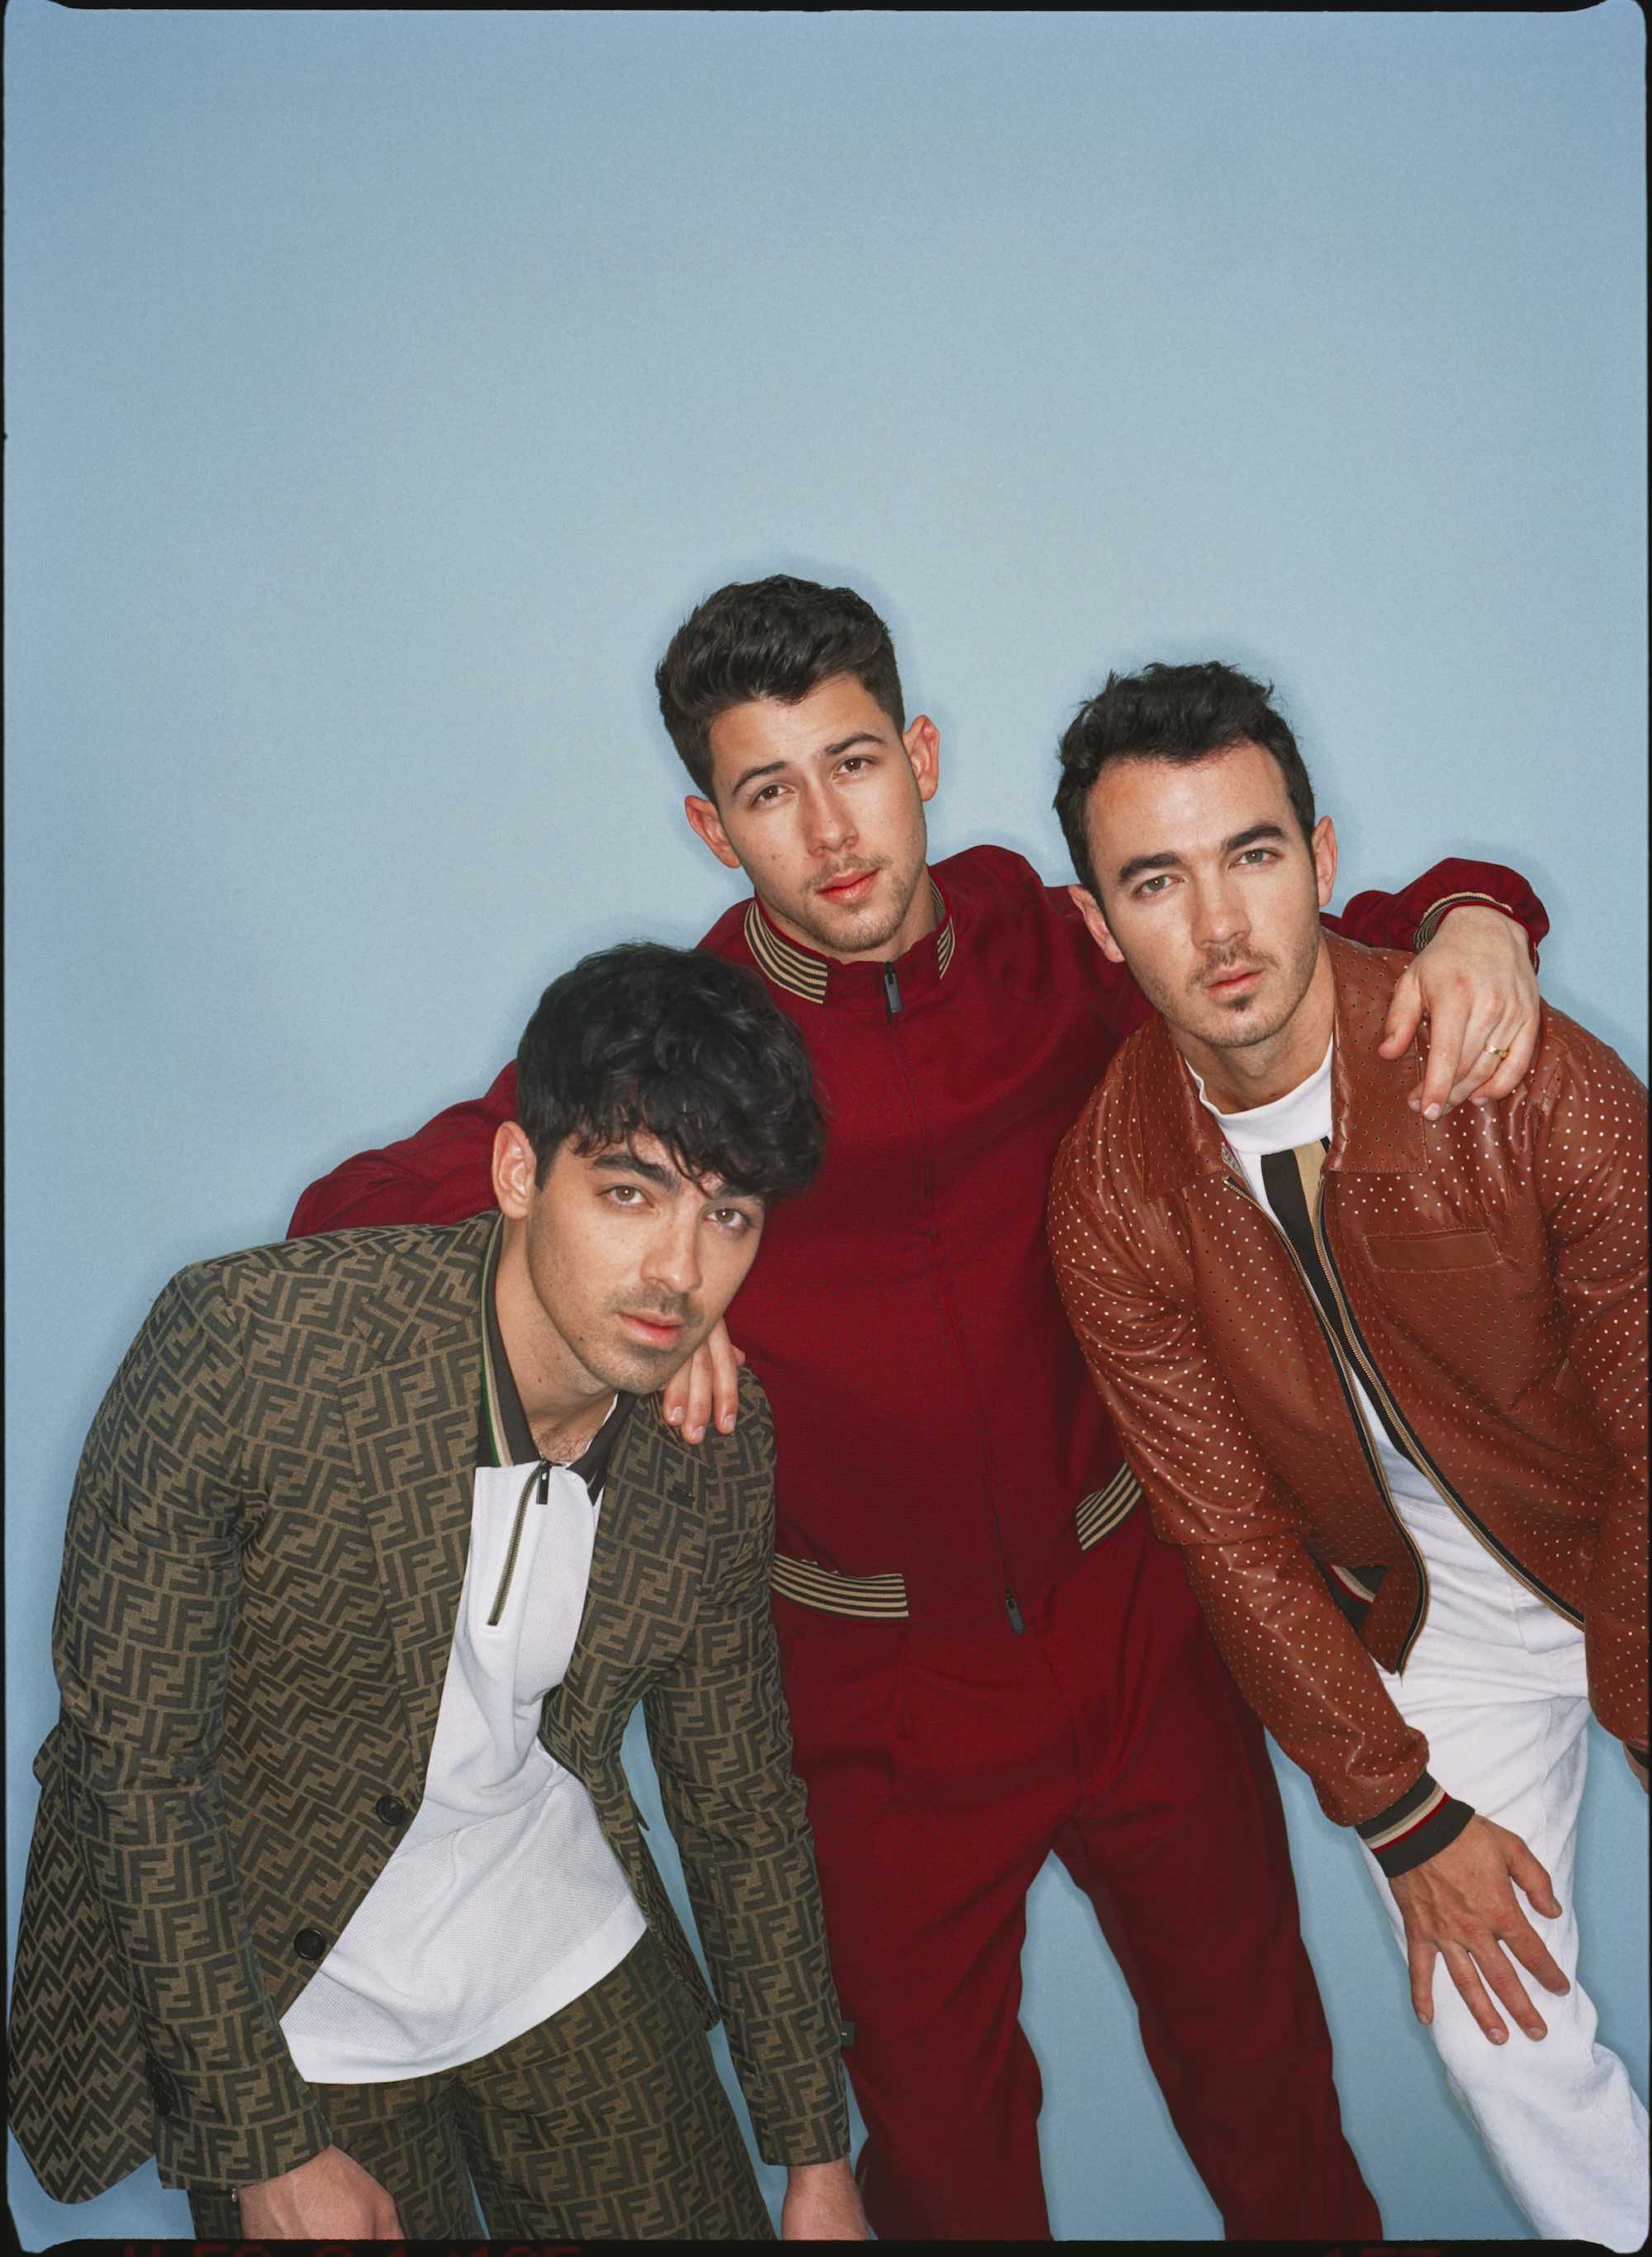 Jonas Brothers for the Summer 2019 cover of Wonderland interview boy band